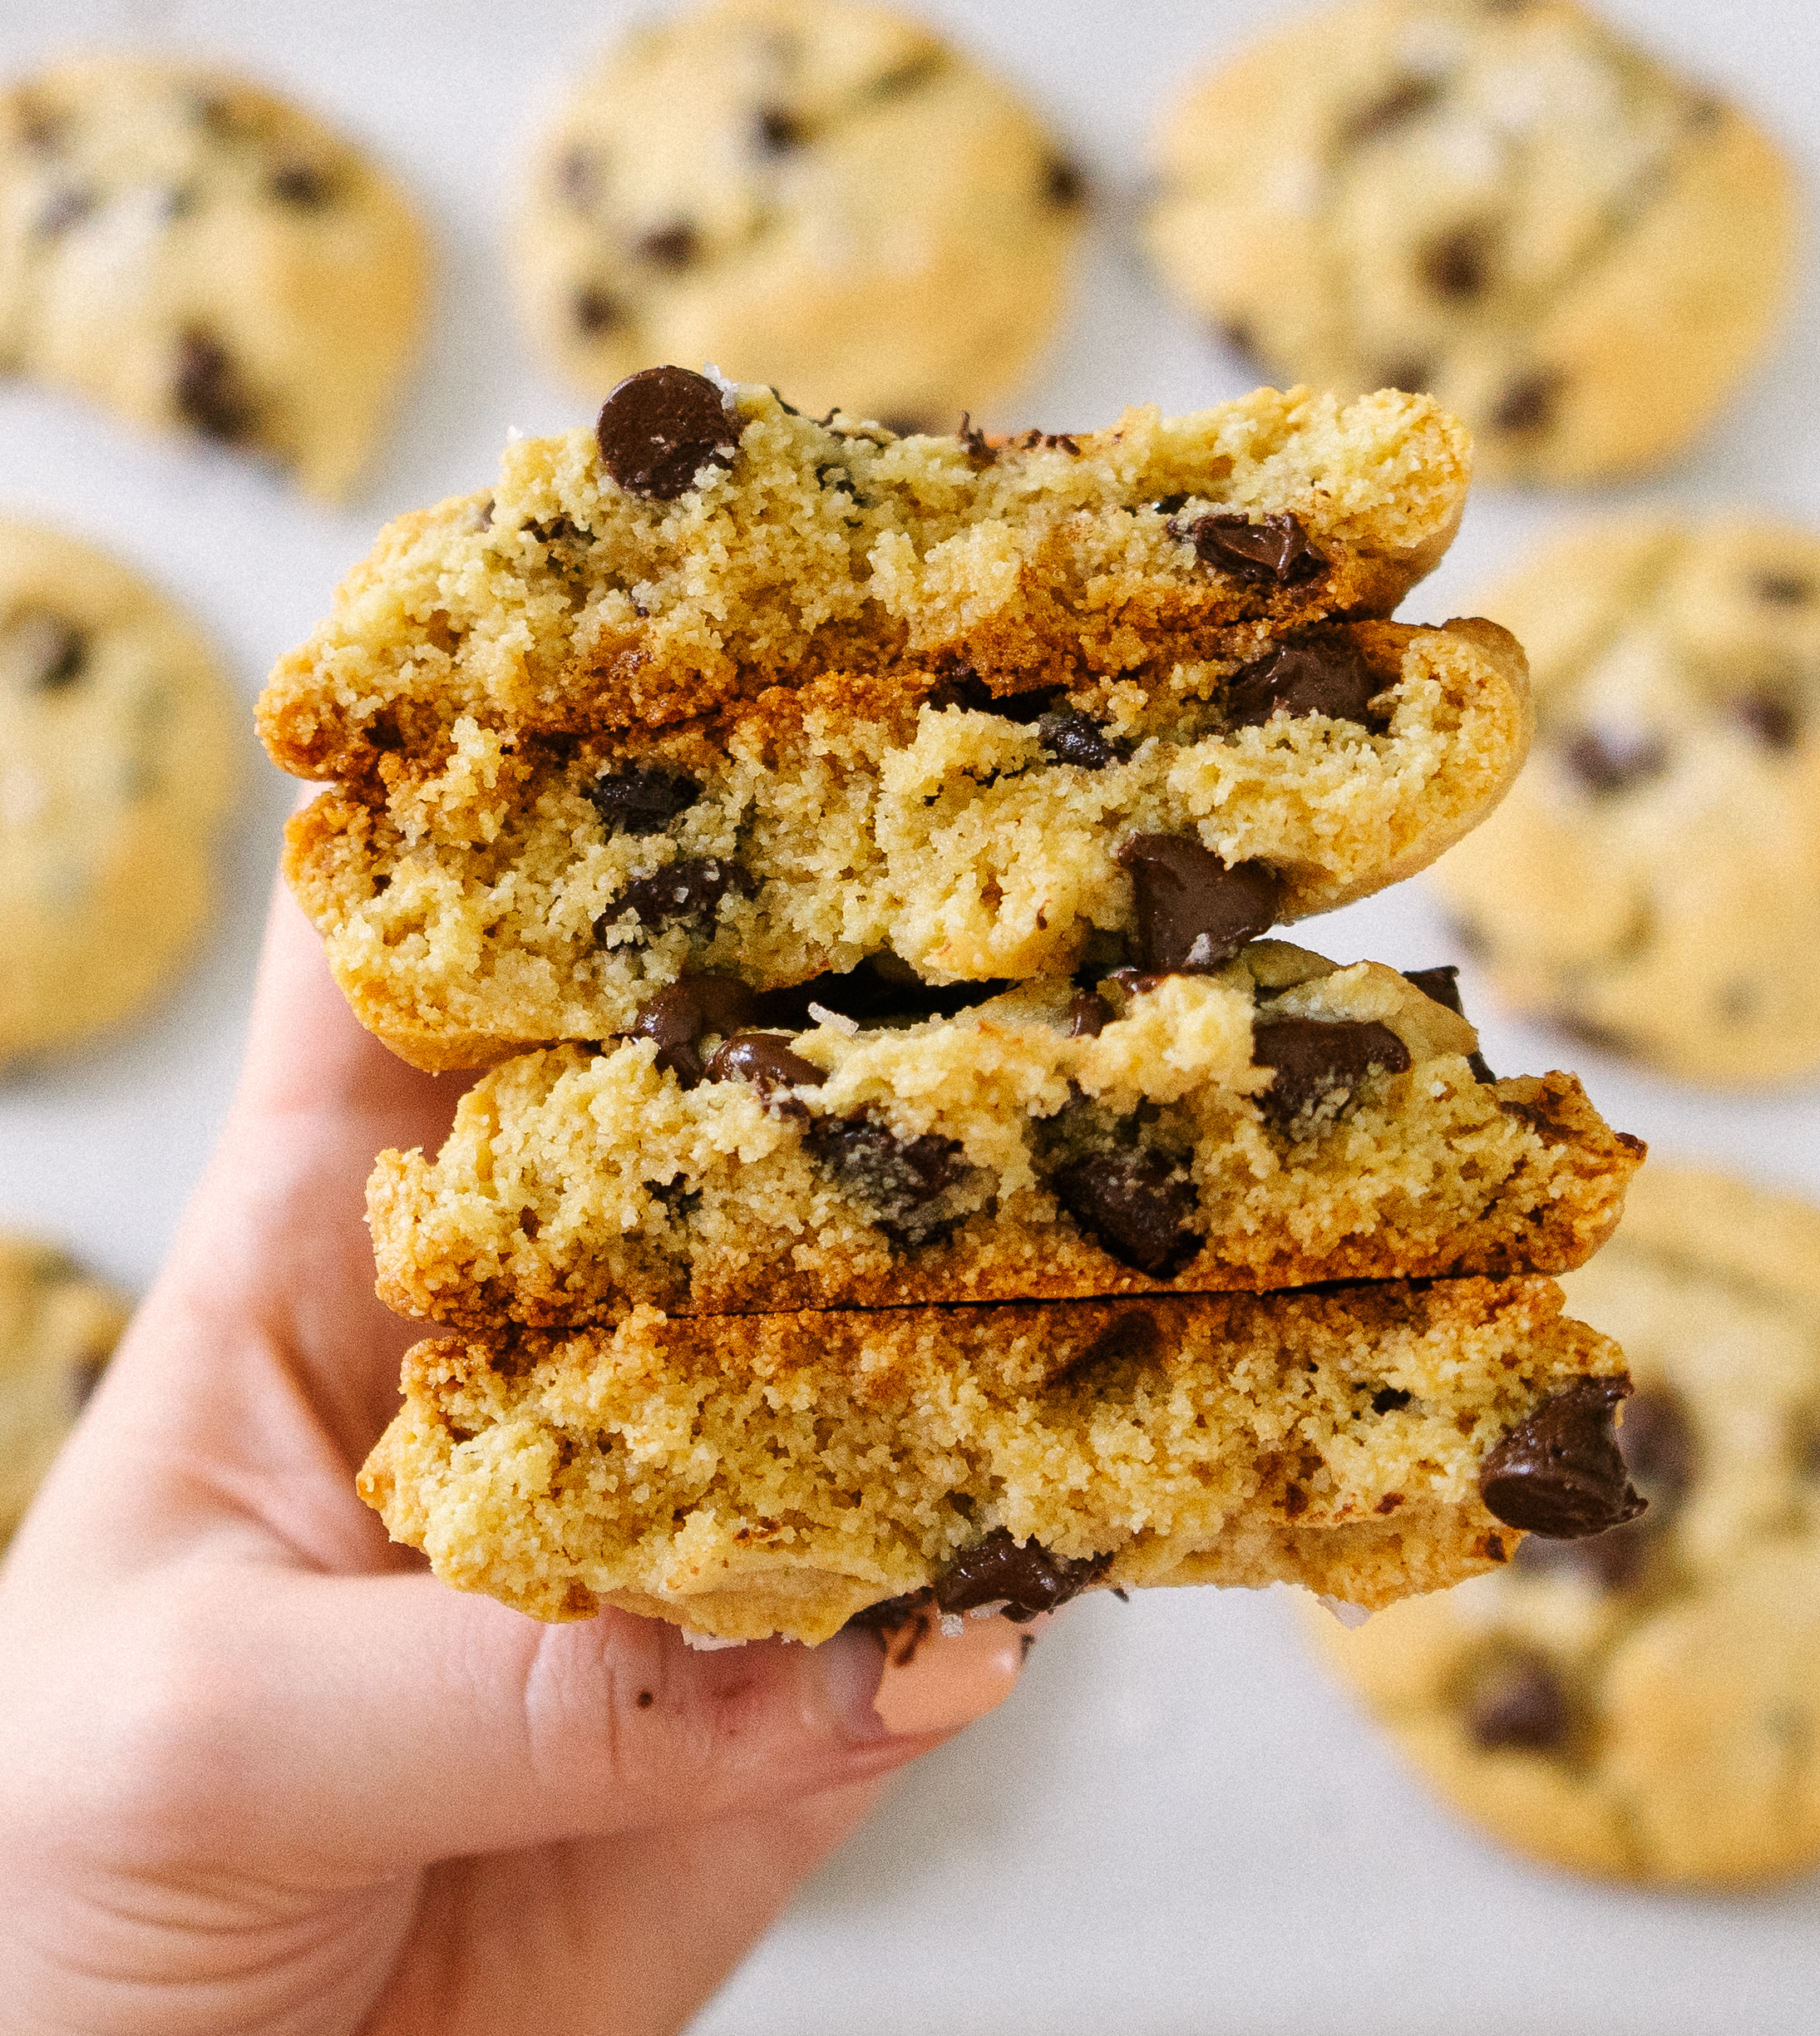 These Grain free chewy chocolate chip cookies are hands down the best gluten free, chewy cookie. Make a sweet and salt batch in less than 30 minutes.